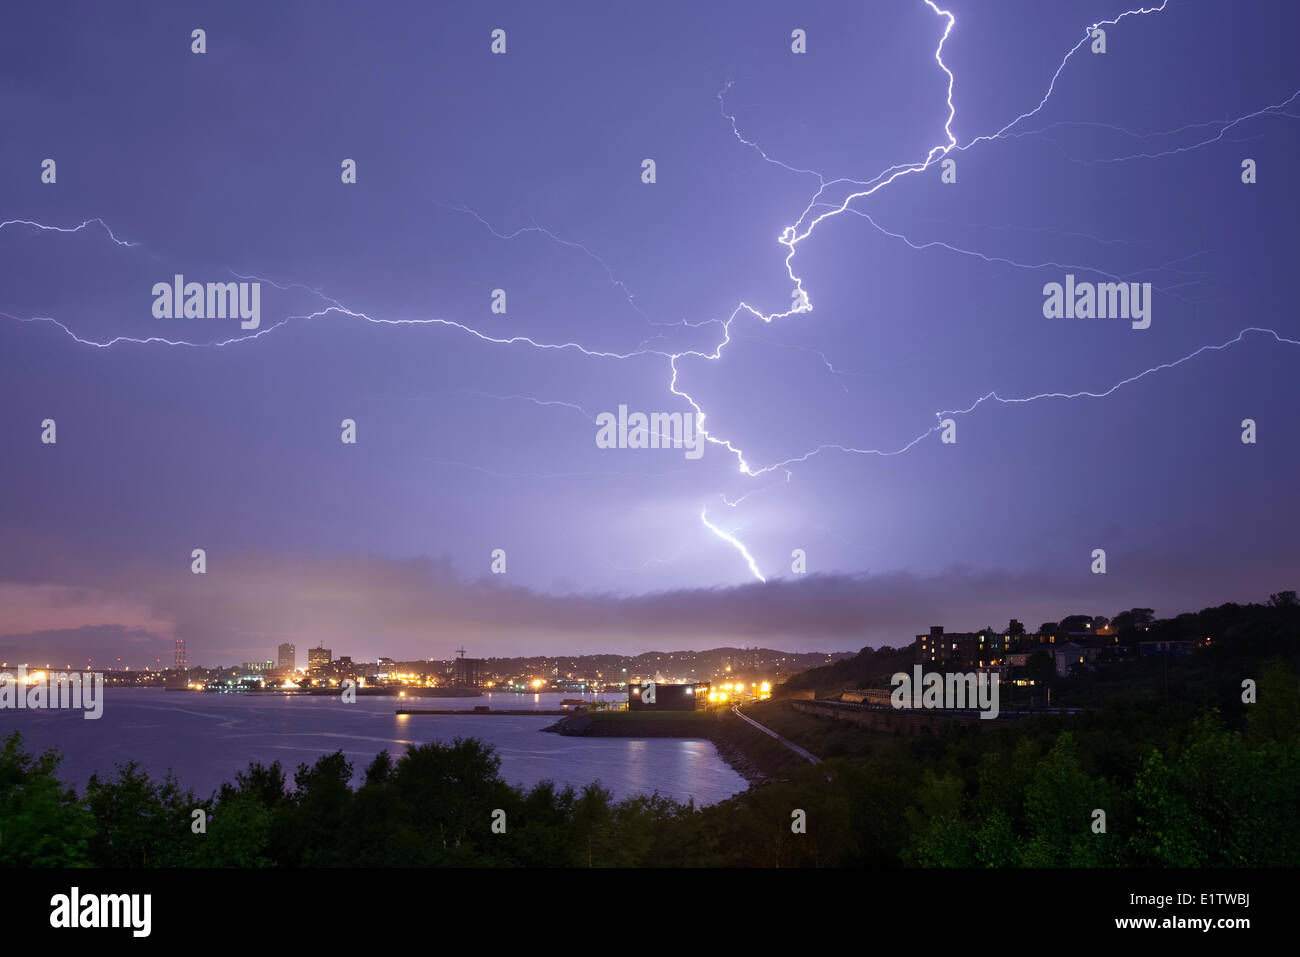 A bolt of cloud to cloud lightning fills the sky over Halifax Harbour and Dartmouth, Nova Scotia - Stock Image